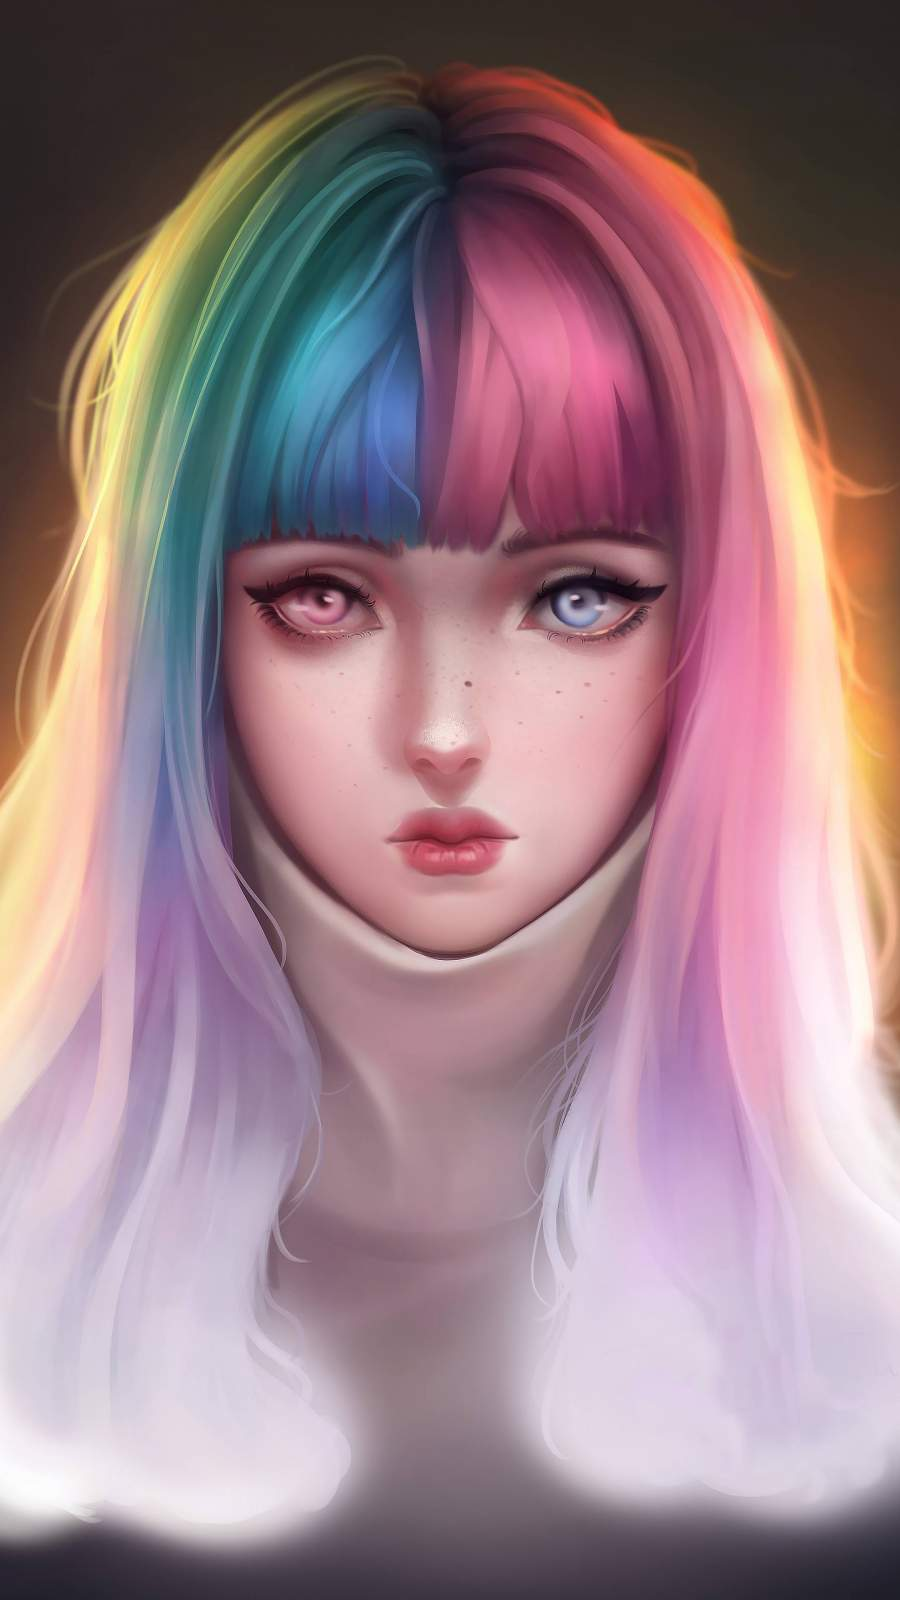 Anime Girl Colorful Hairs iPhone Wallpaper